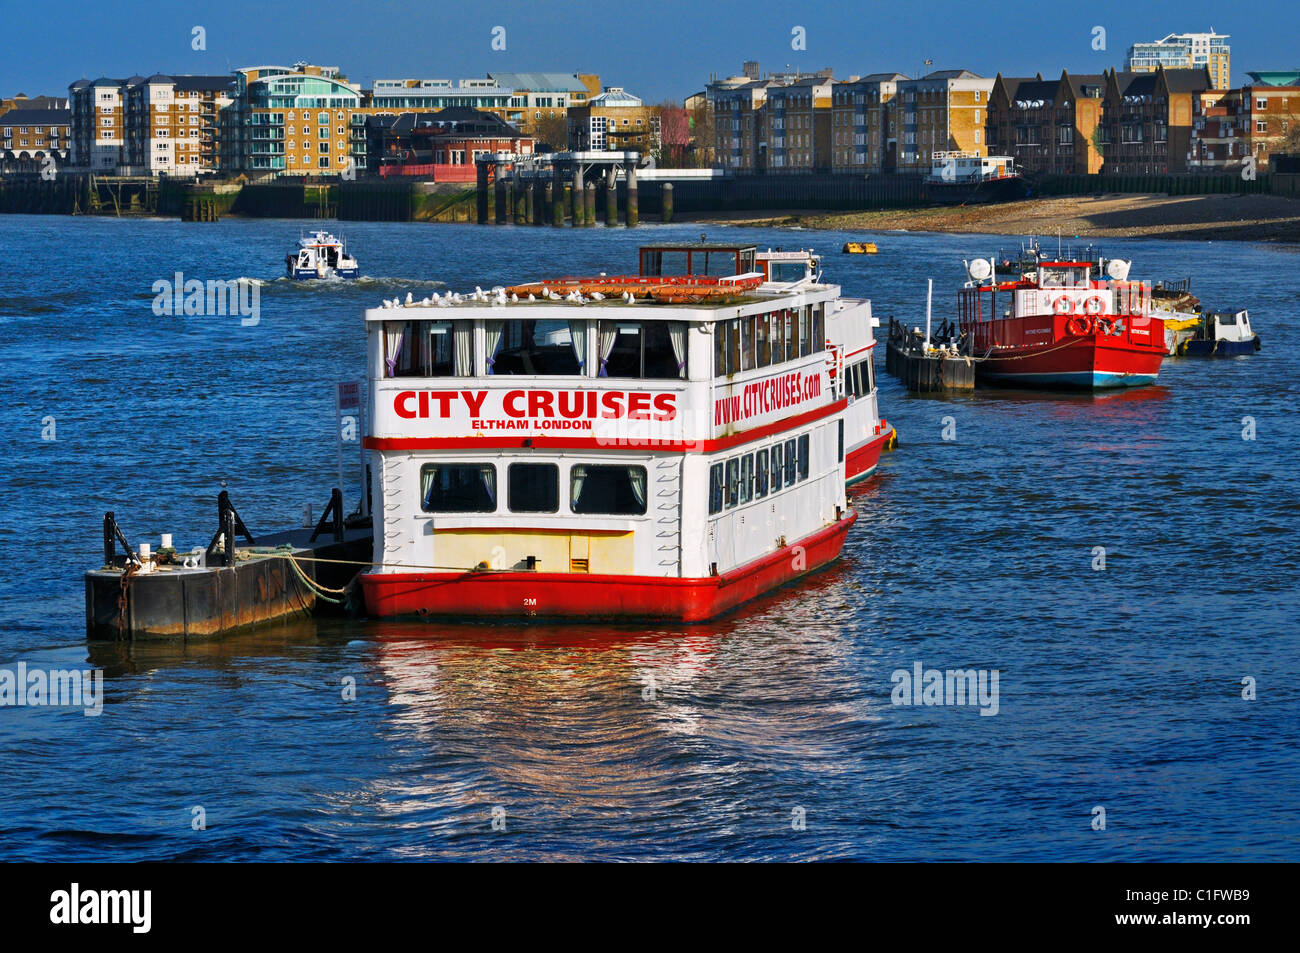 City cruise riverboat M.V. Eltham moored on River Thames with modern apartments along the banks, London, UK - Stock Image